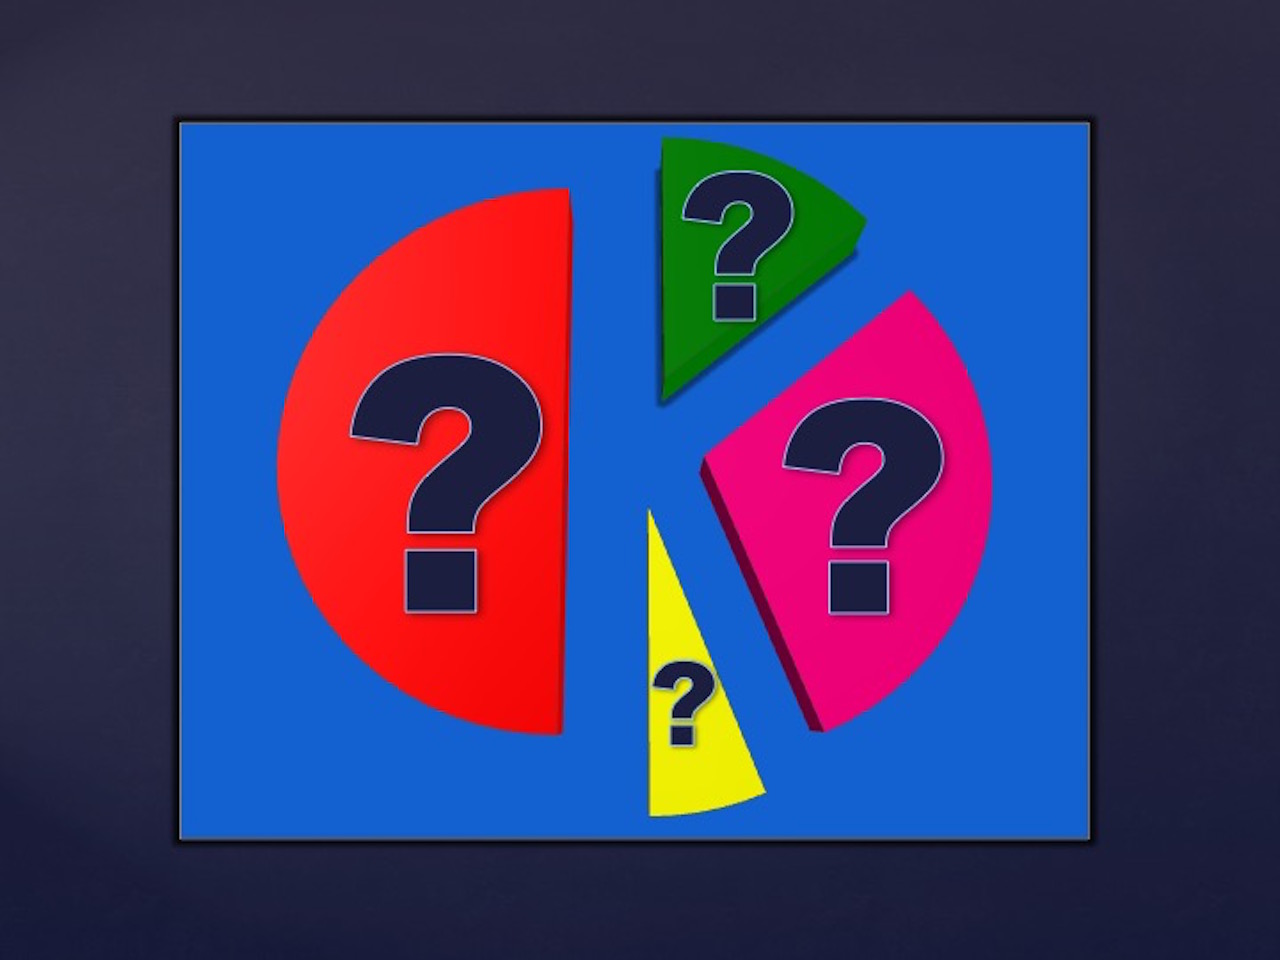 Pie chart with colorful red green pink yellow slices, on light blue background and blue-violet frame, and question marks on each slice